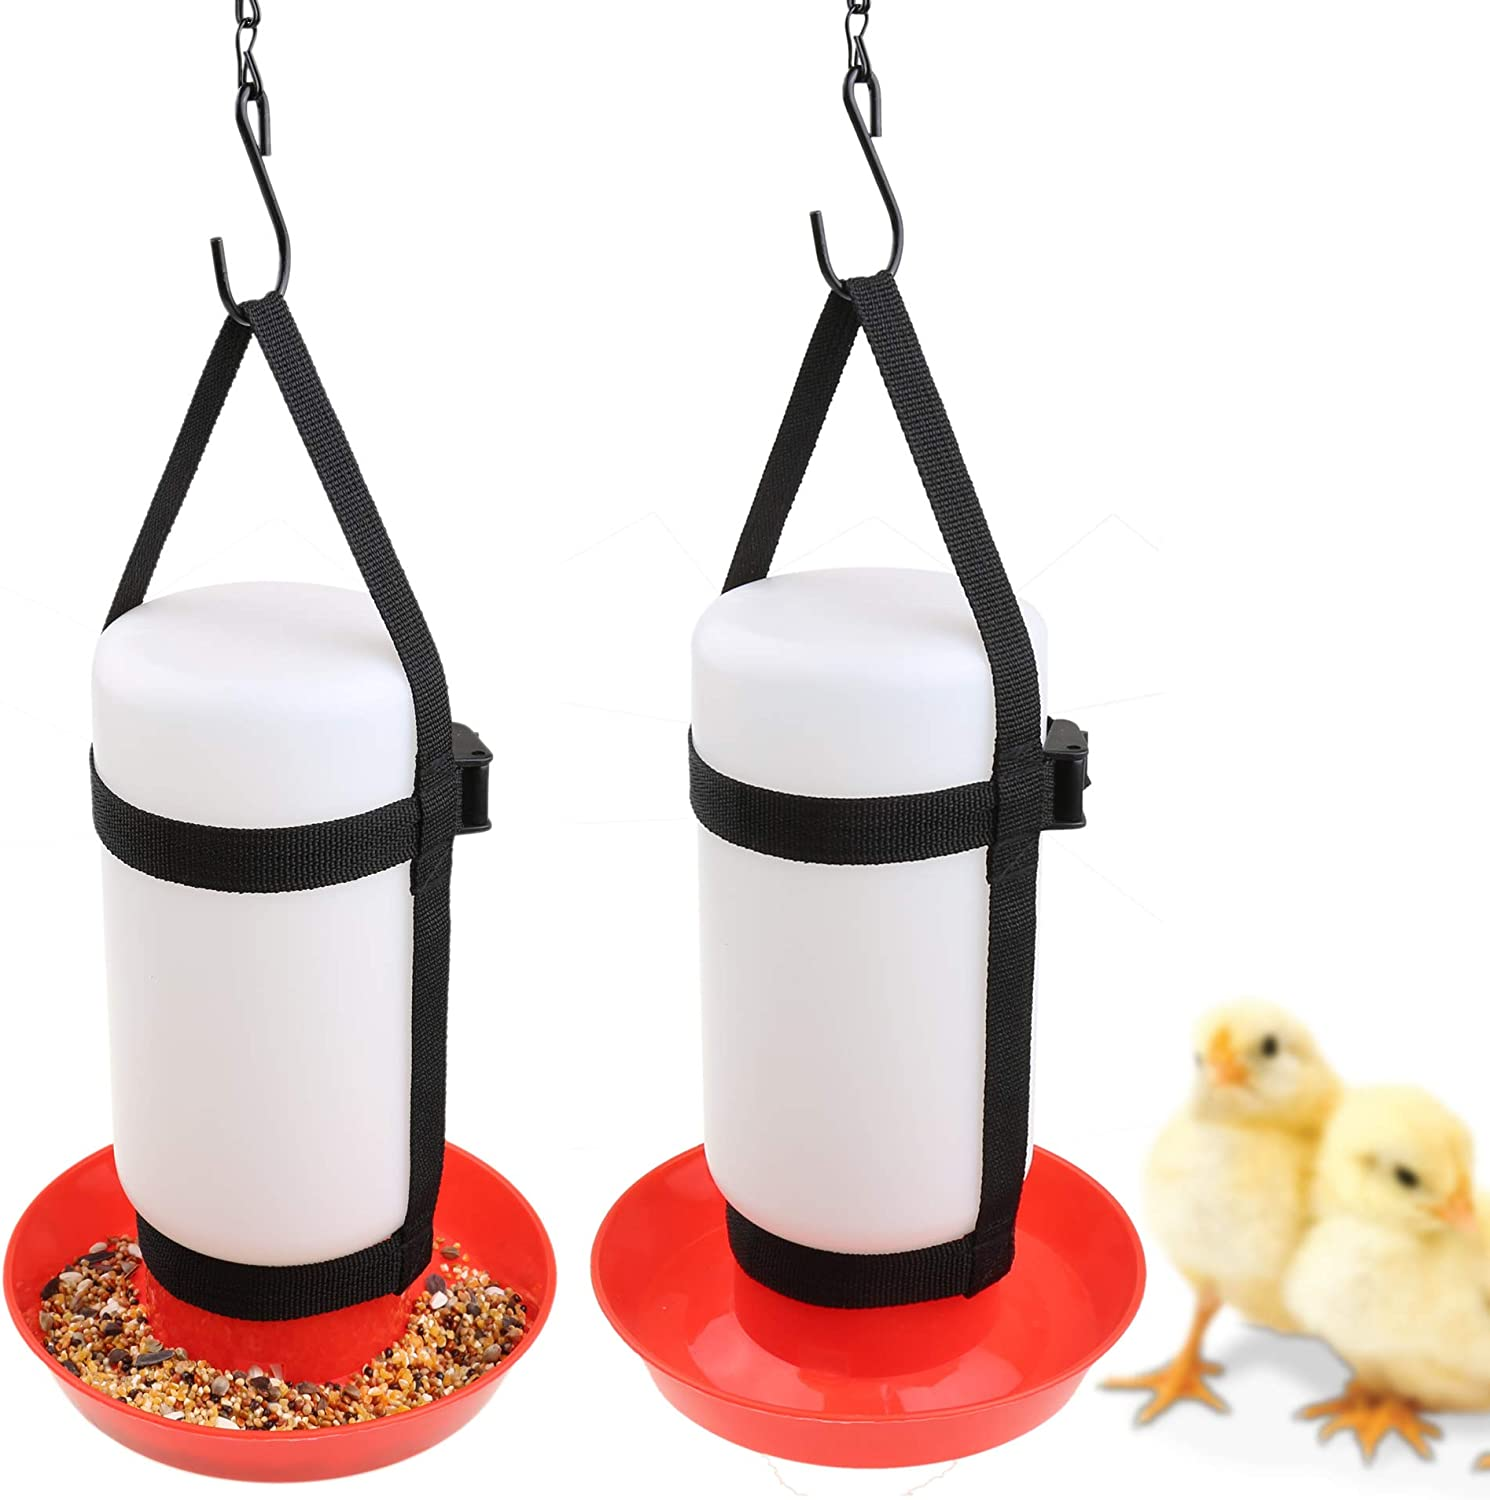 YUYUSO 1 Pair Chicken Hanging Straps for Chicken Waterer Feeder Harness Chick Brooder Coop Cage Does NOT Include Bottle Or Base